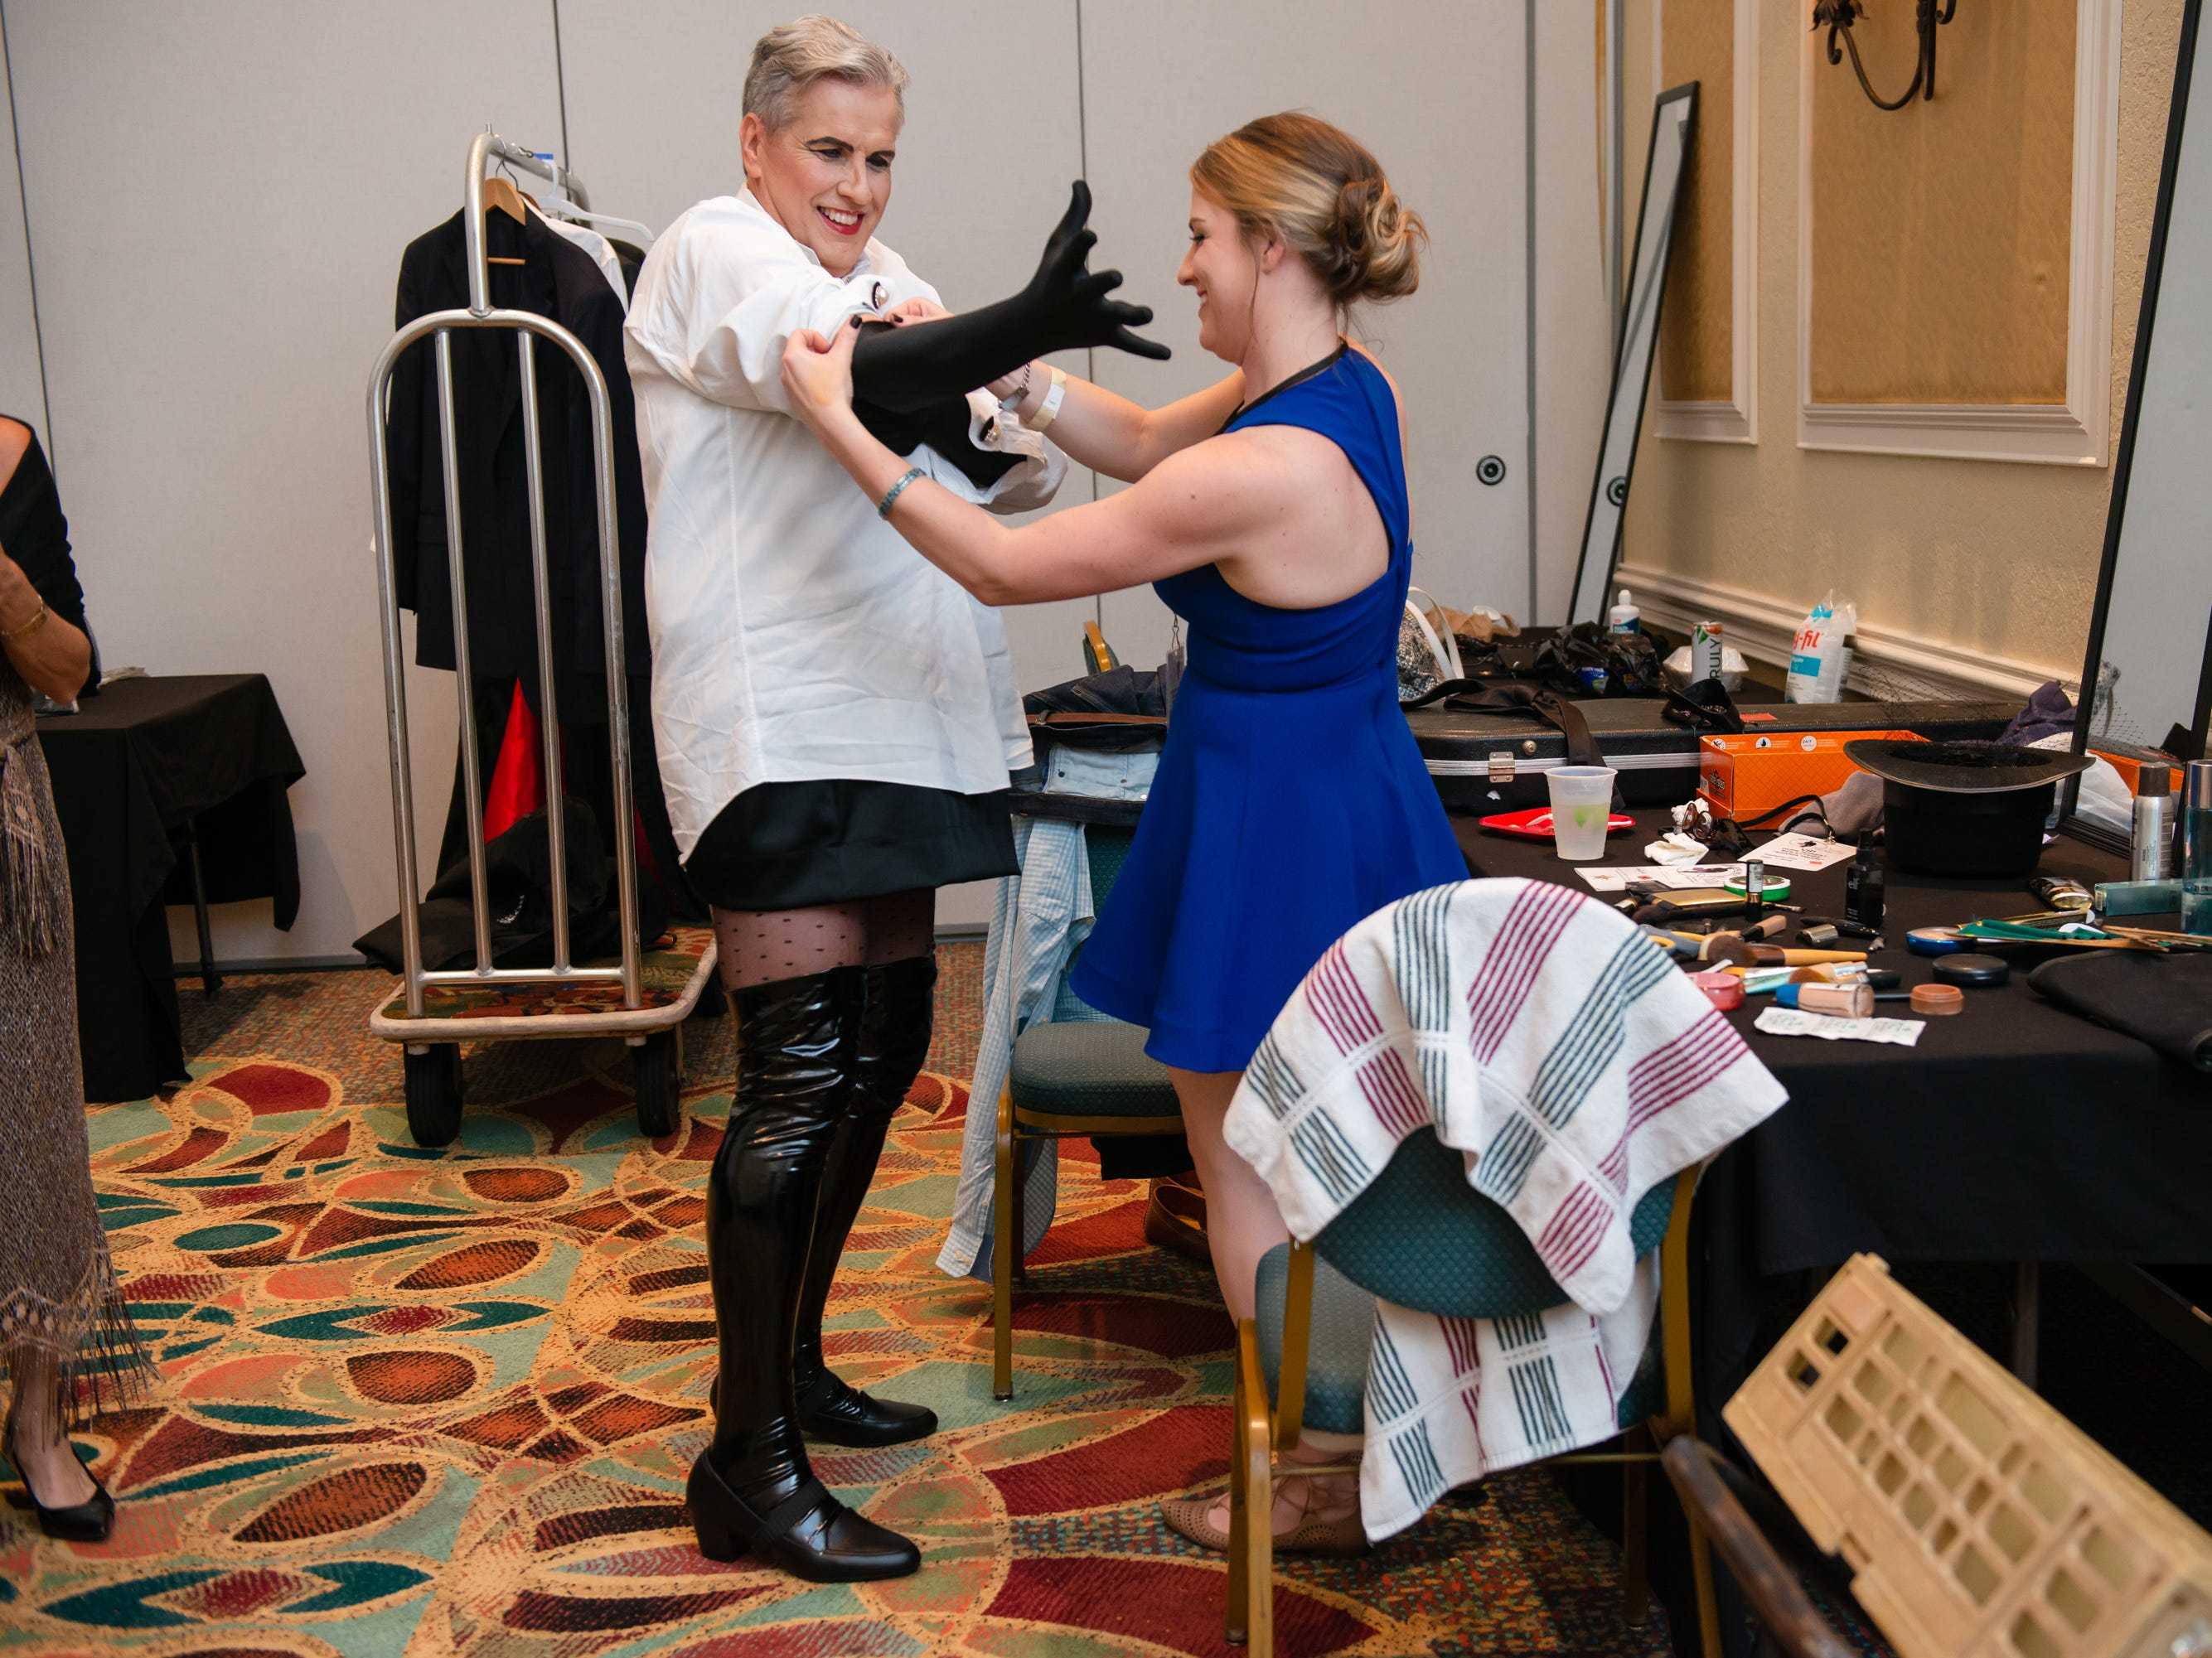 """Robert Moletteire gets dressed as Shania Twain with the assistance of Sarah Smith at """"Dude Looks Like a Lady"""" event benefitting the Women's Center."""